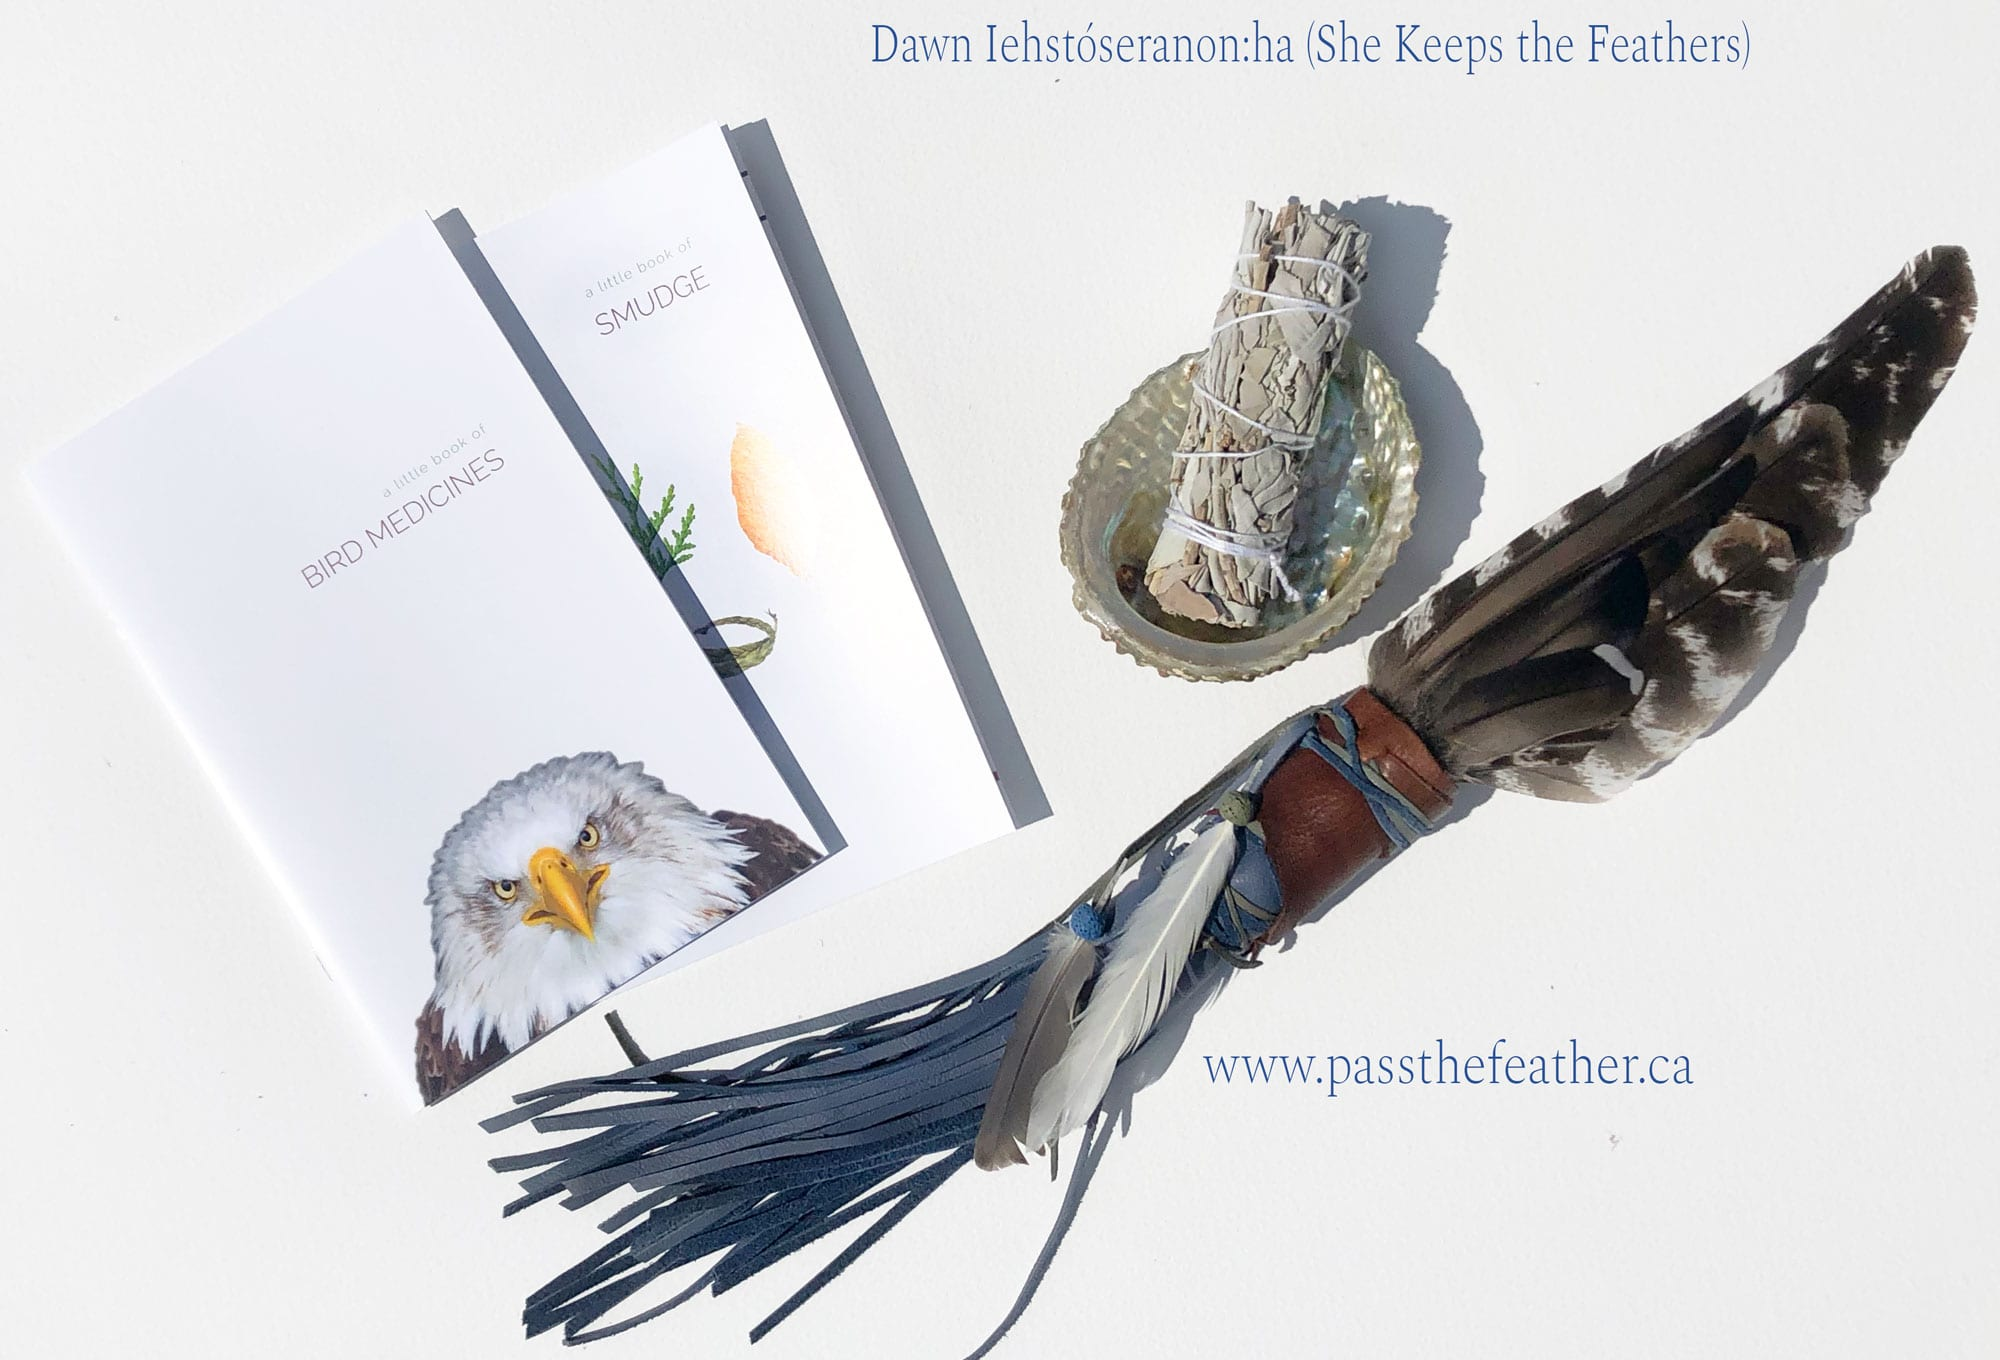 christmas ornament, feathers, pass the feather, dawn, christmas card